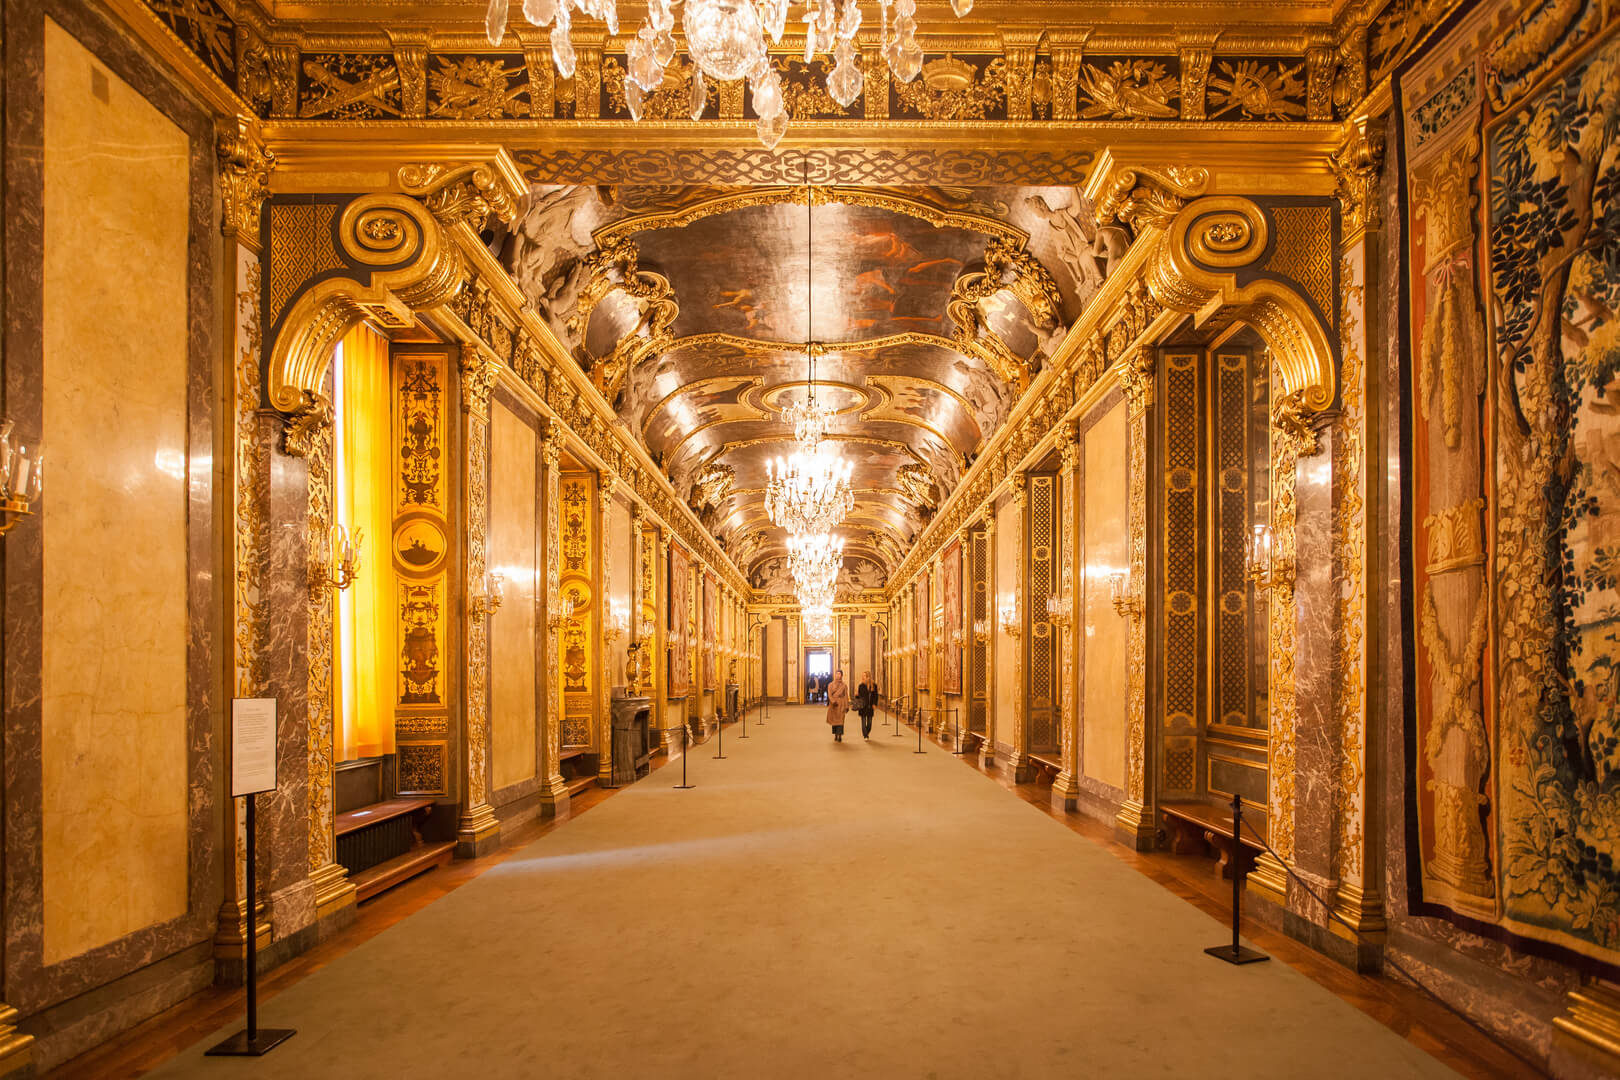 Karl XI Gallery in the Royal Palace of Stockholm, a baroque style room inspired by the hall of mirrors at Versailles, Sweden